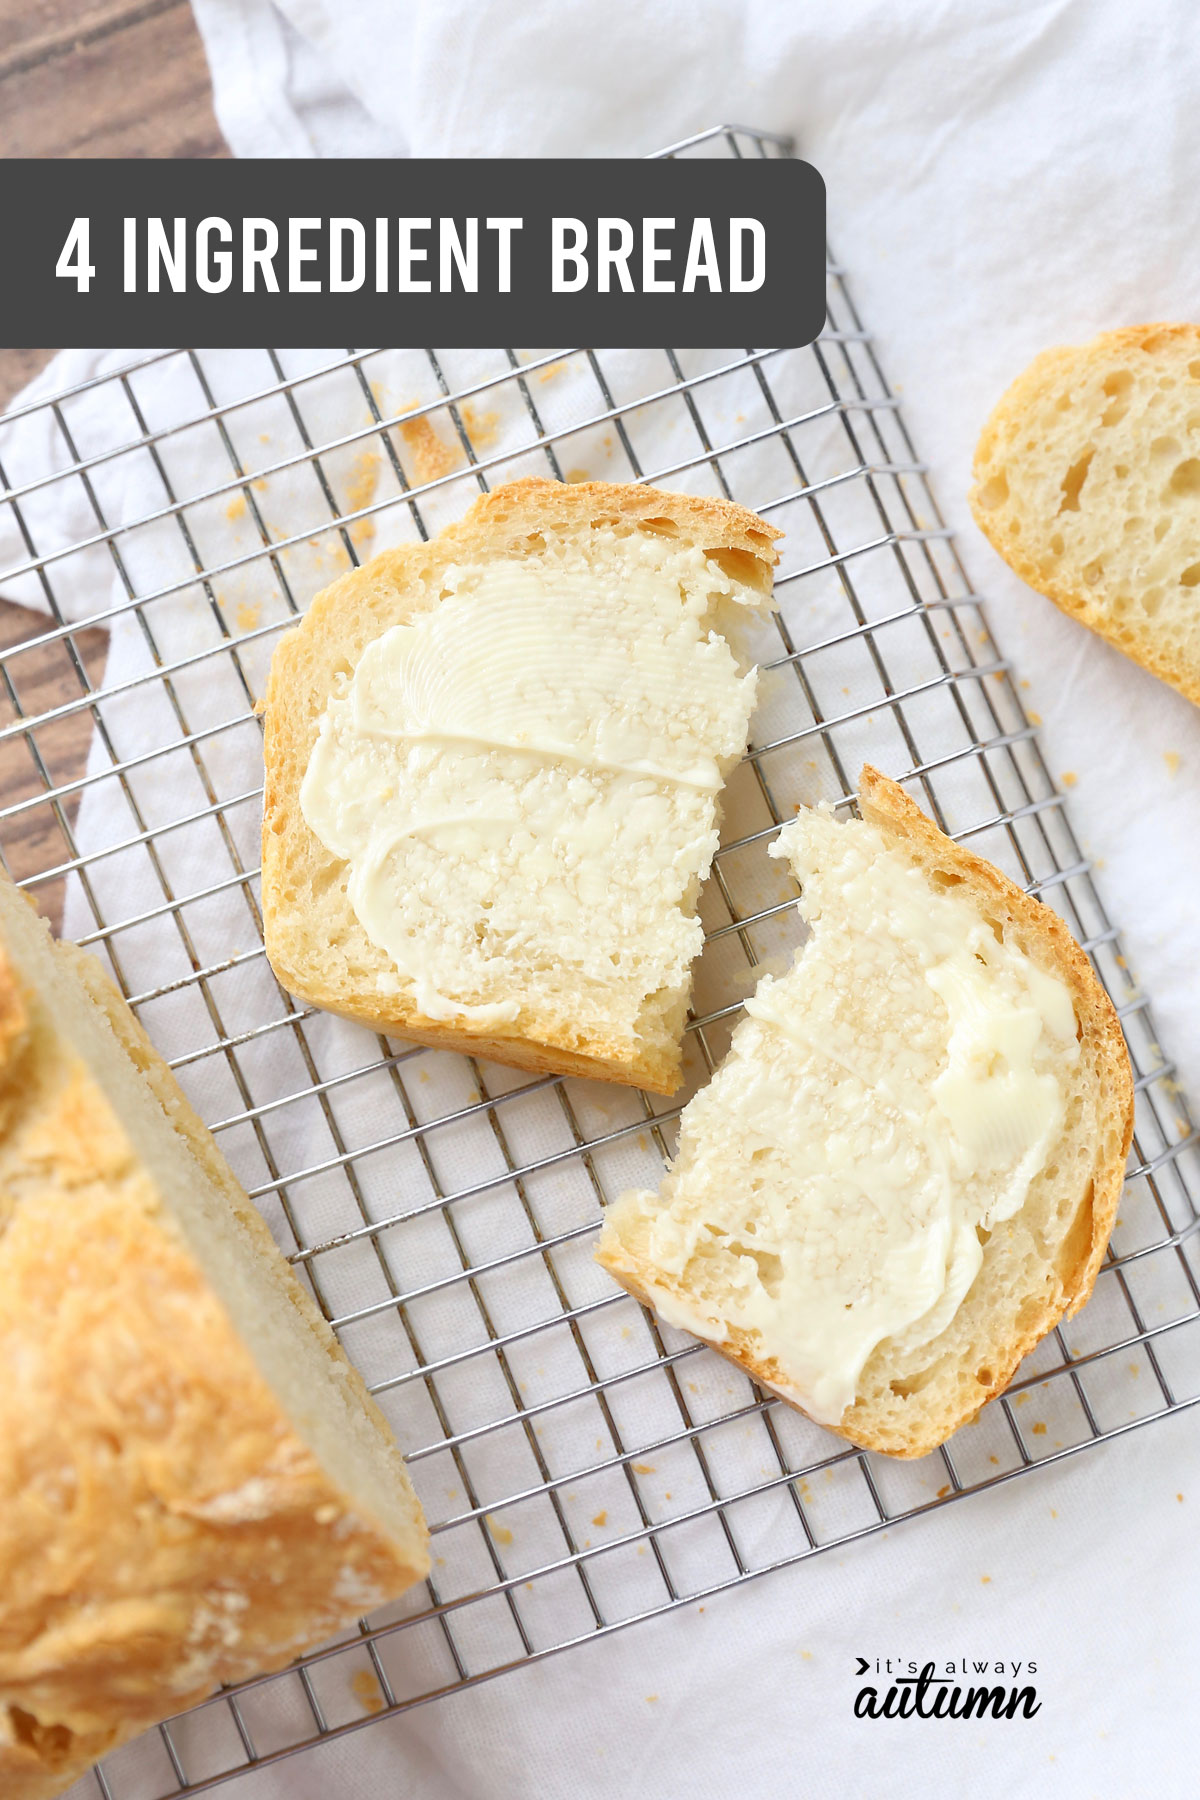 This easy bread recipe only require flour, salt, yeast, and water! All you have to do is stir, rise, and bake.